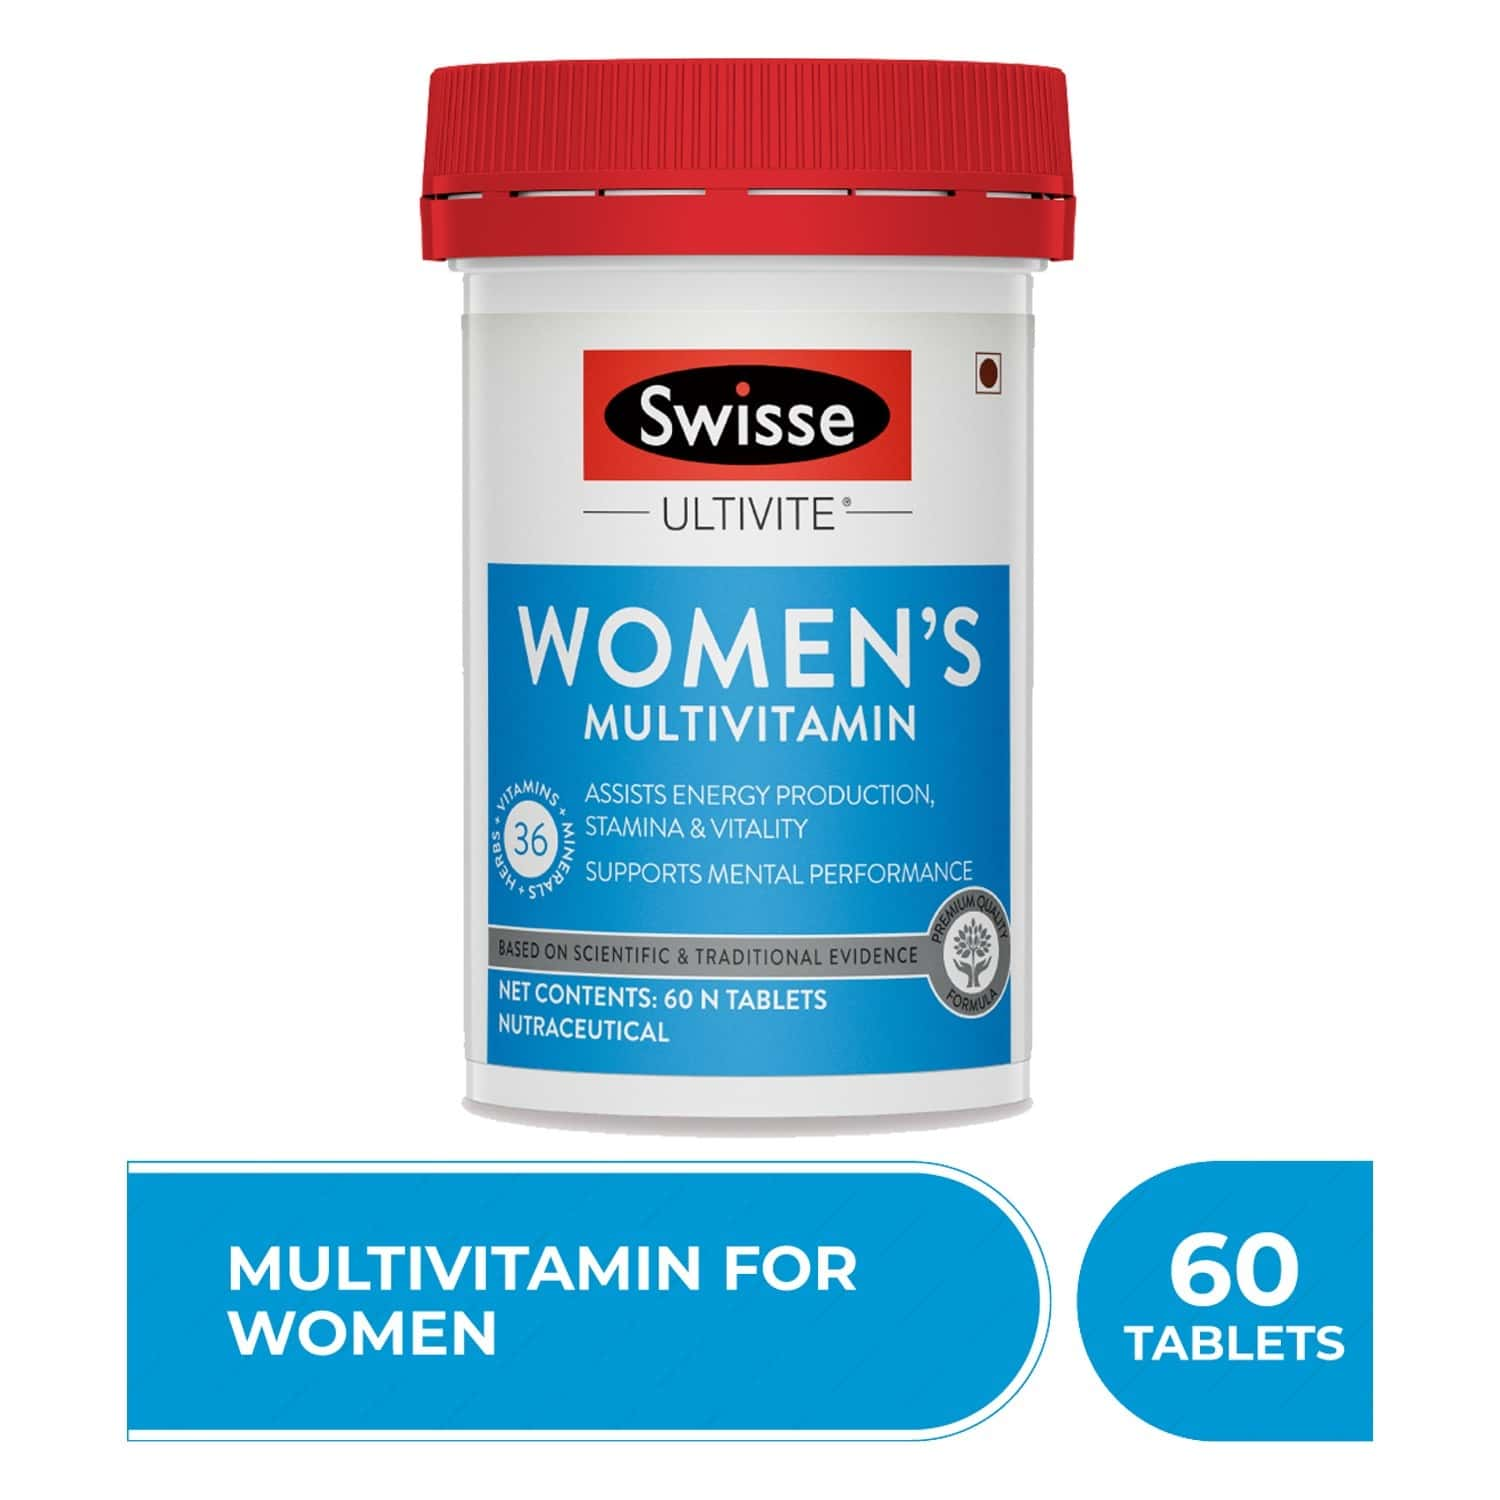 Swisse Ultivite Women's Multivitamin (36 Herbs Vitamins & Minerals) For Energy Stamina Vitality And Mental Performance - 60 Tablets